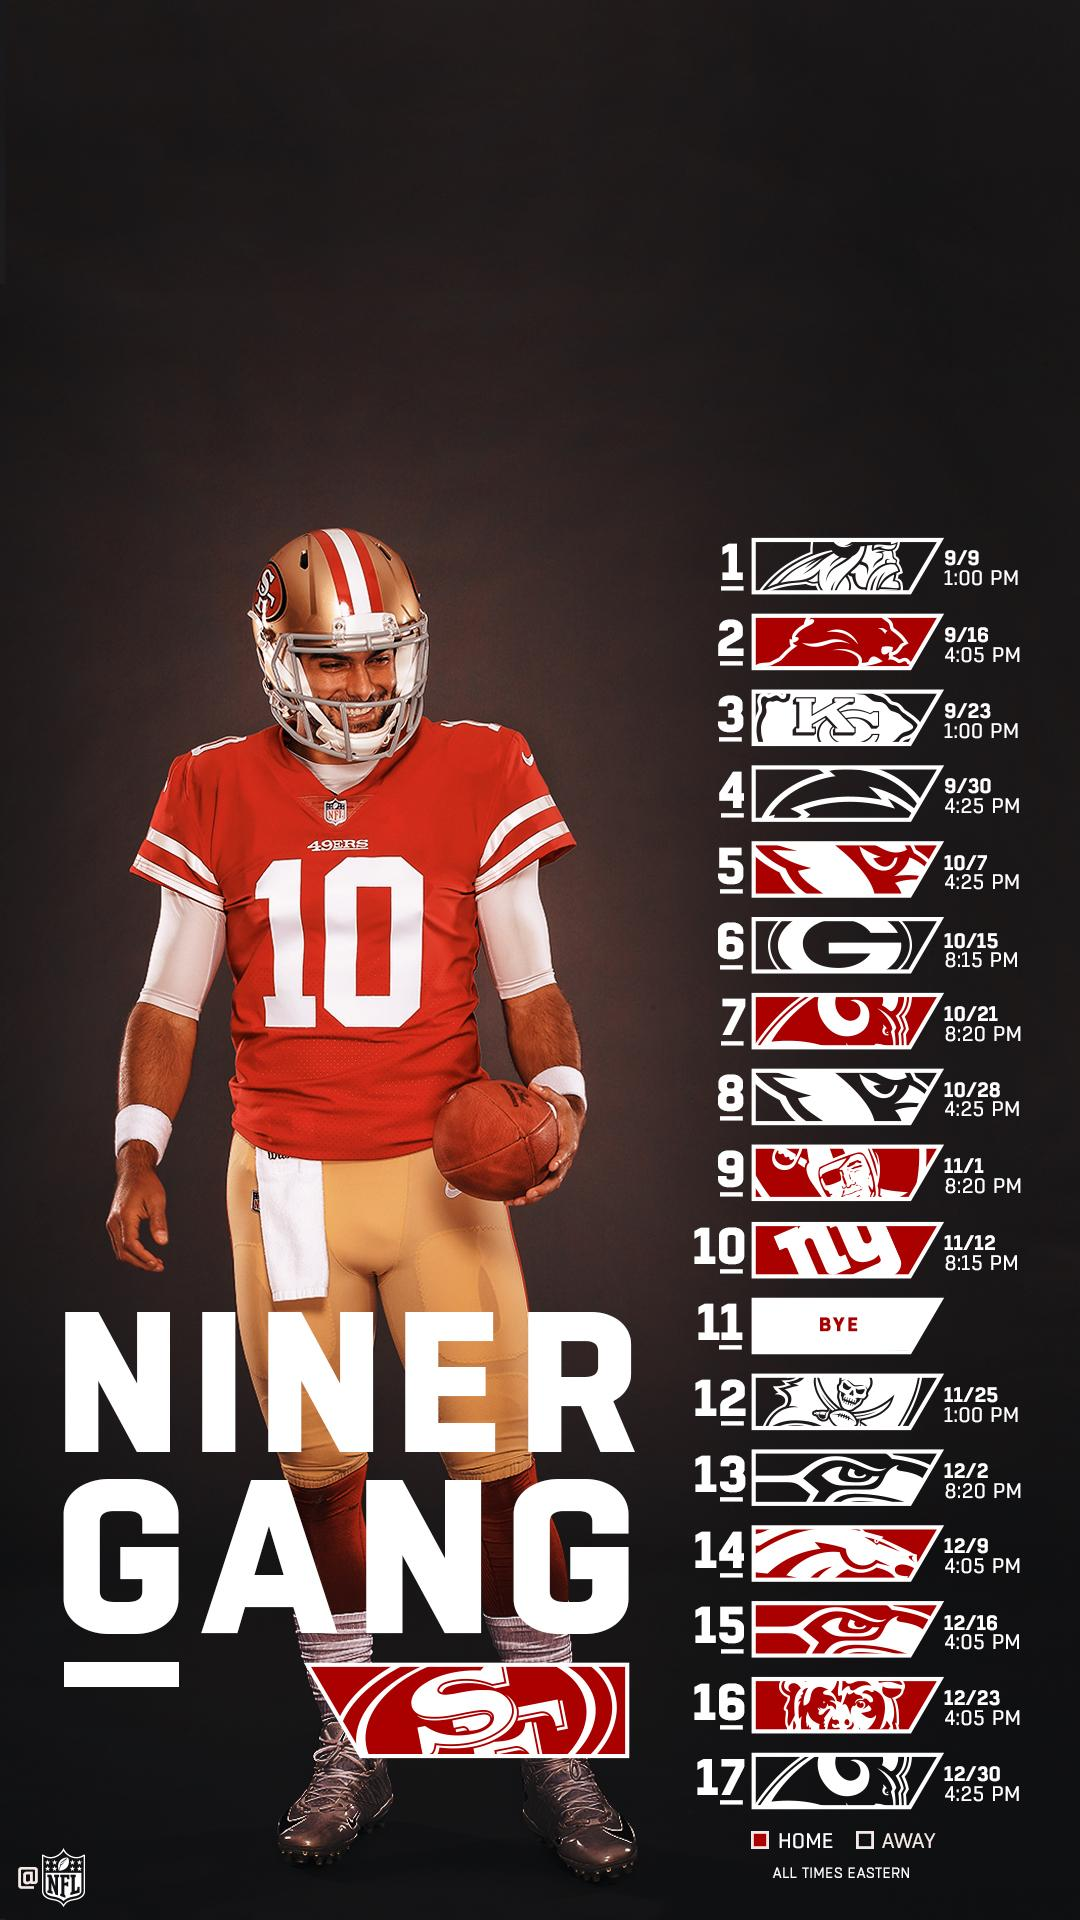 Download 49ers Phone Wallpaper Hd Backgrounds Download